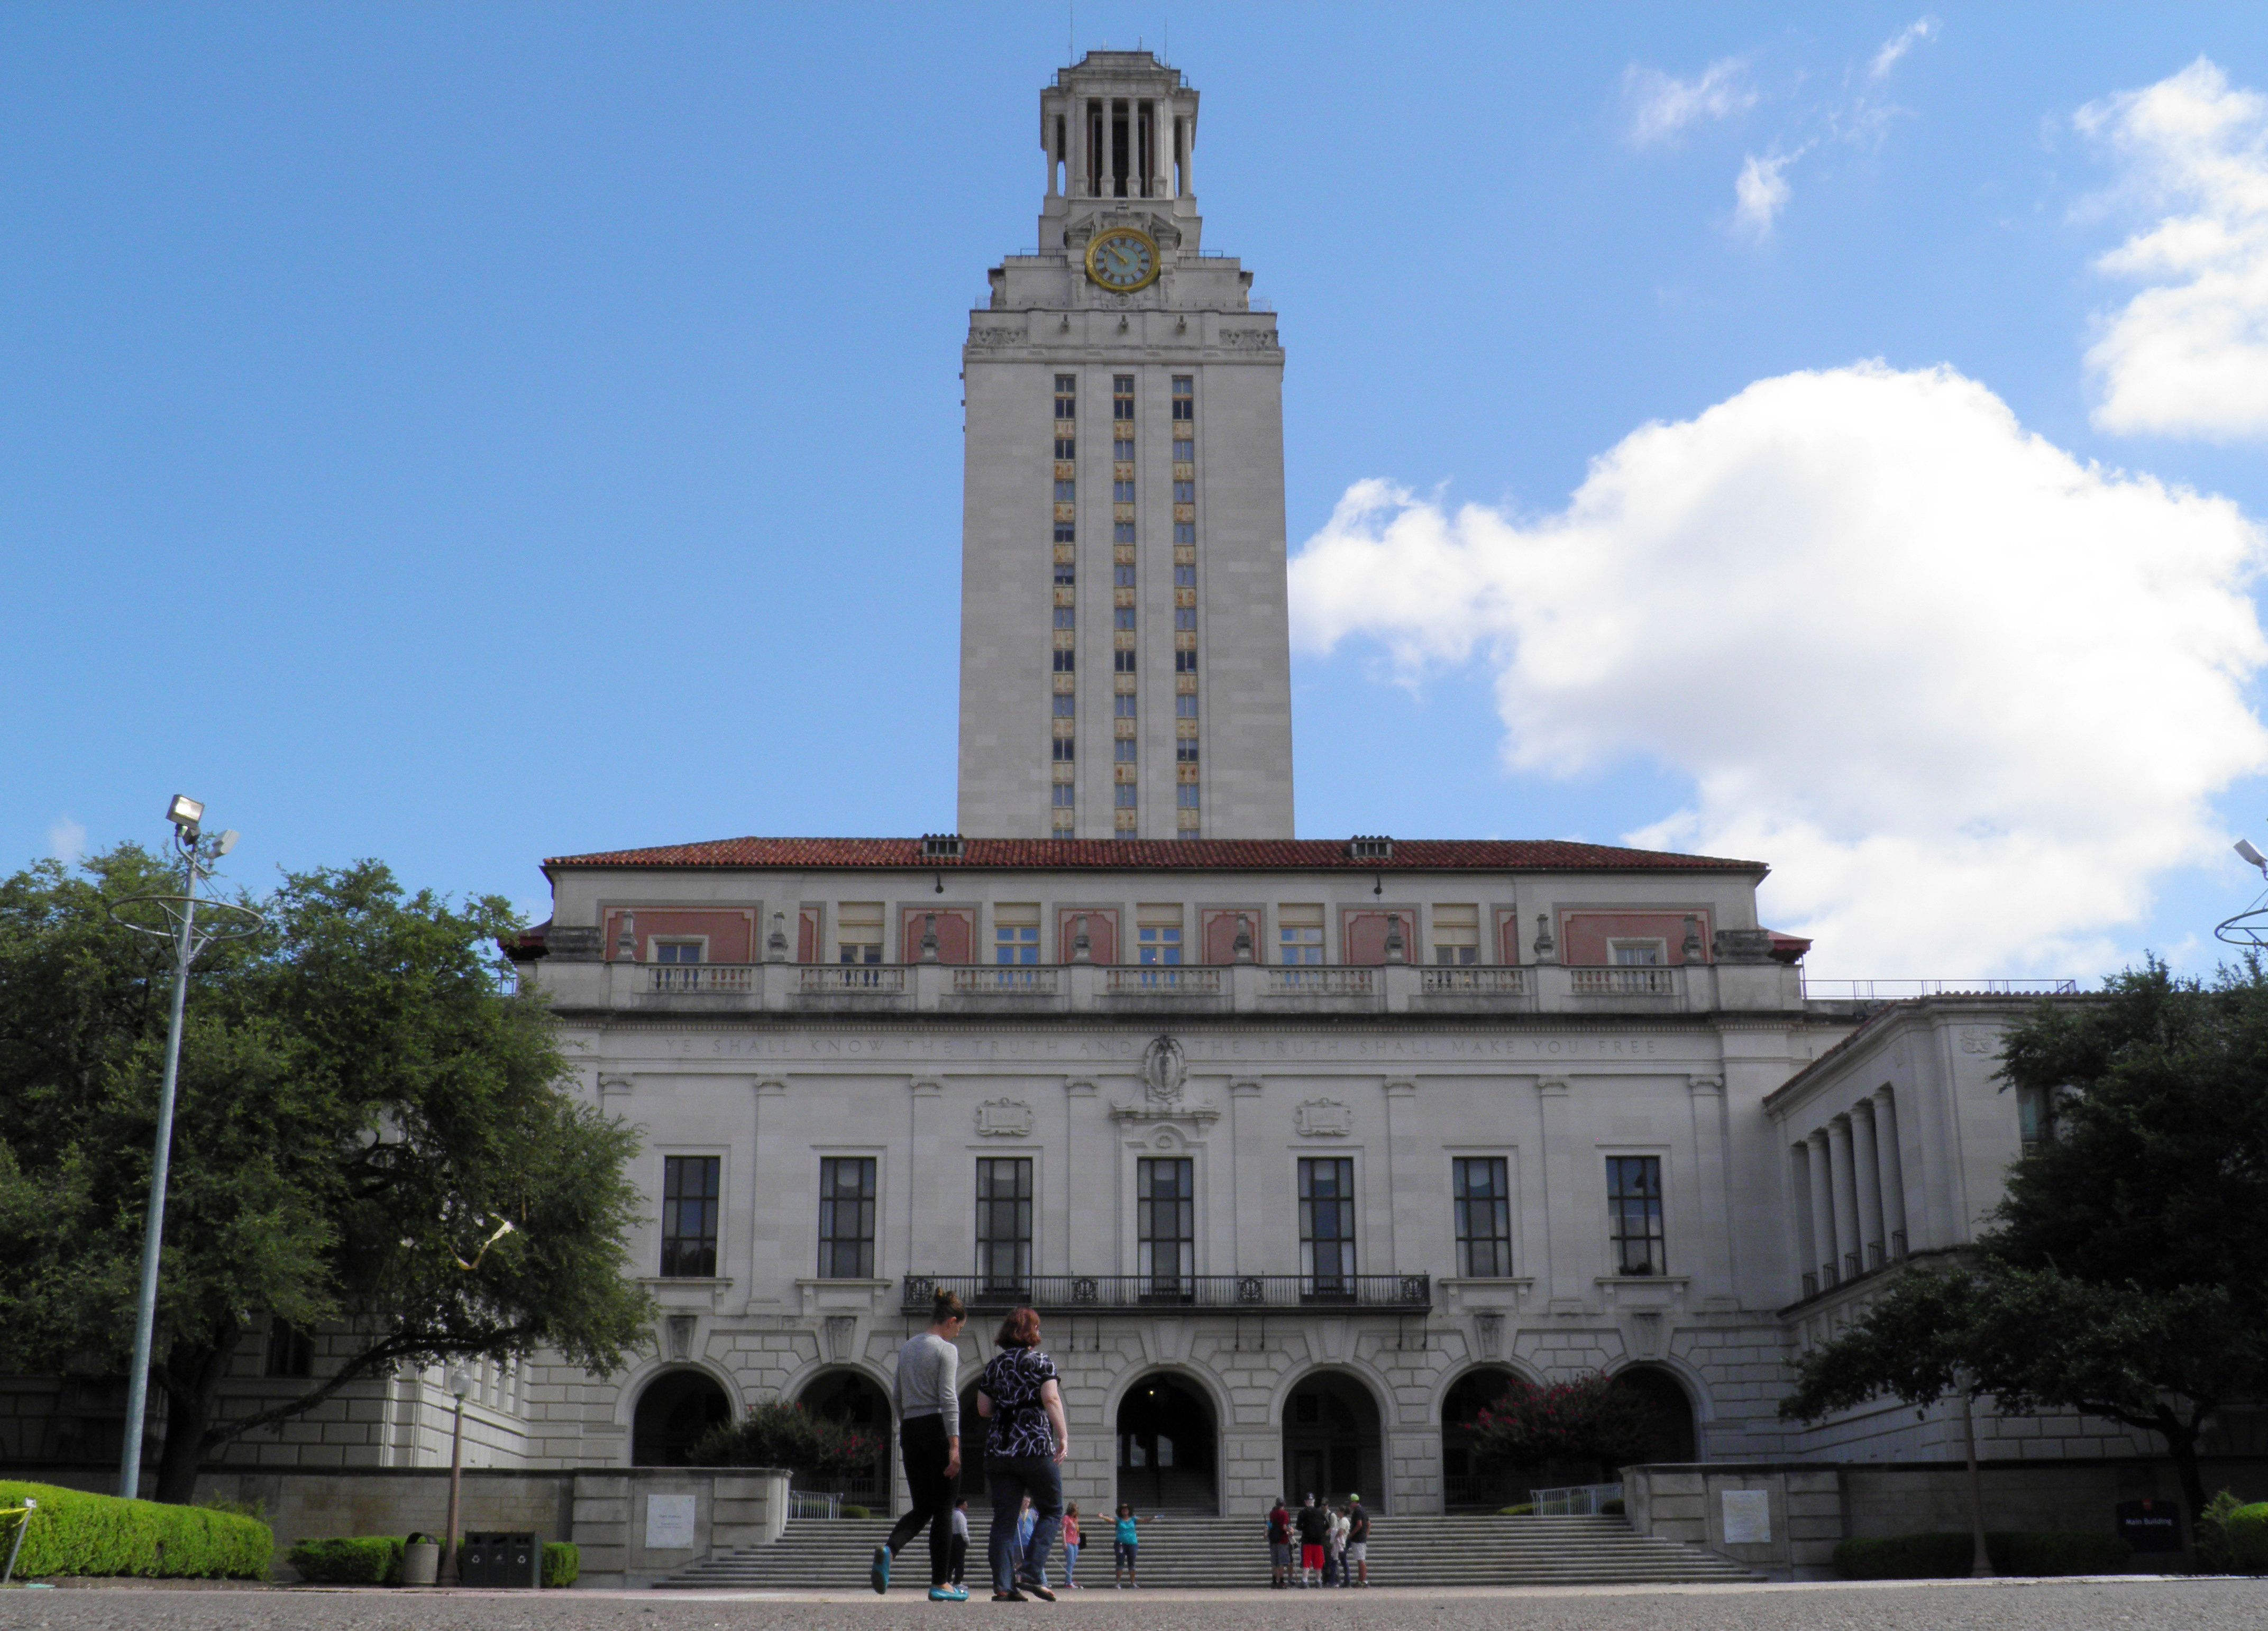 People walk at the University of Texas campus in Austin, Texas, U.S. on June 23, 2016. A U.S. district judge onMonday denied a motion from three University of Texas professors who wanted to ban guns in their classroom after the state gave some students that right under a law then went into effect this month.  REUTERS/Jon Herskovitz/File Photo